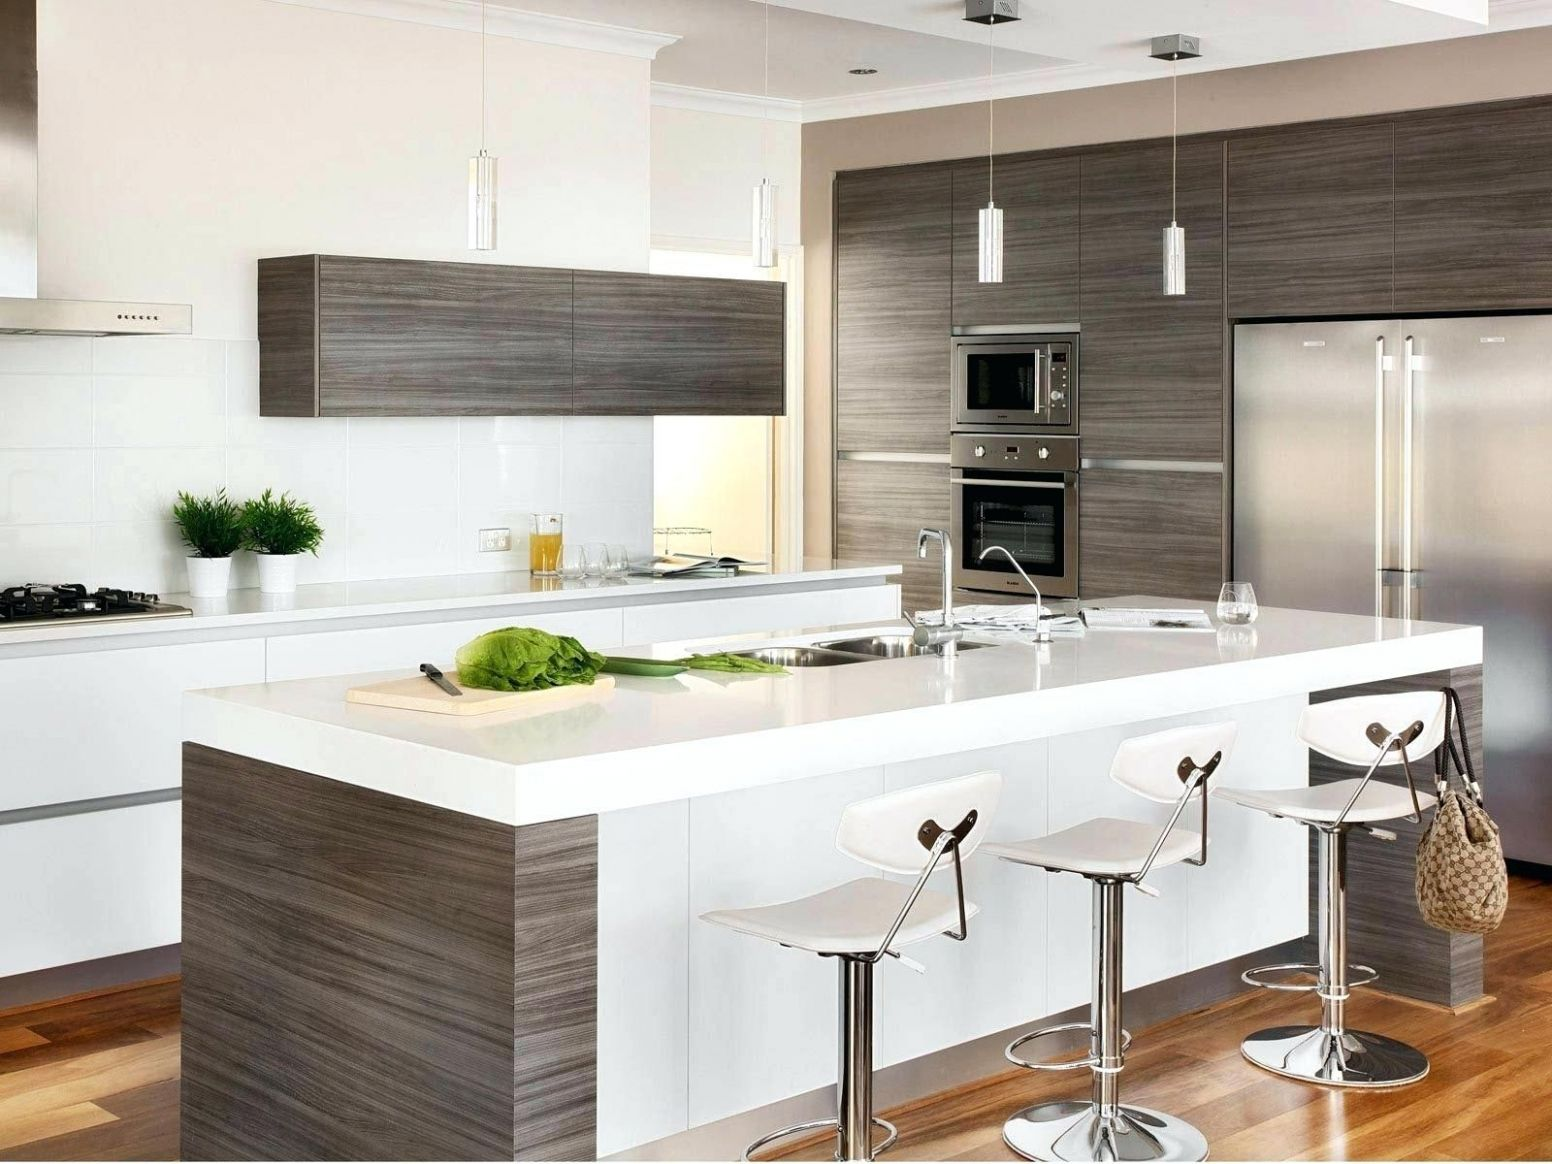 9 Kitchen Renovation Cost Nz | Kitchen remodel small, Kitchen ..